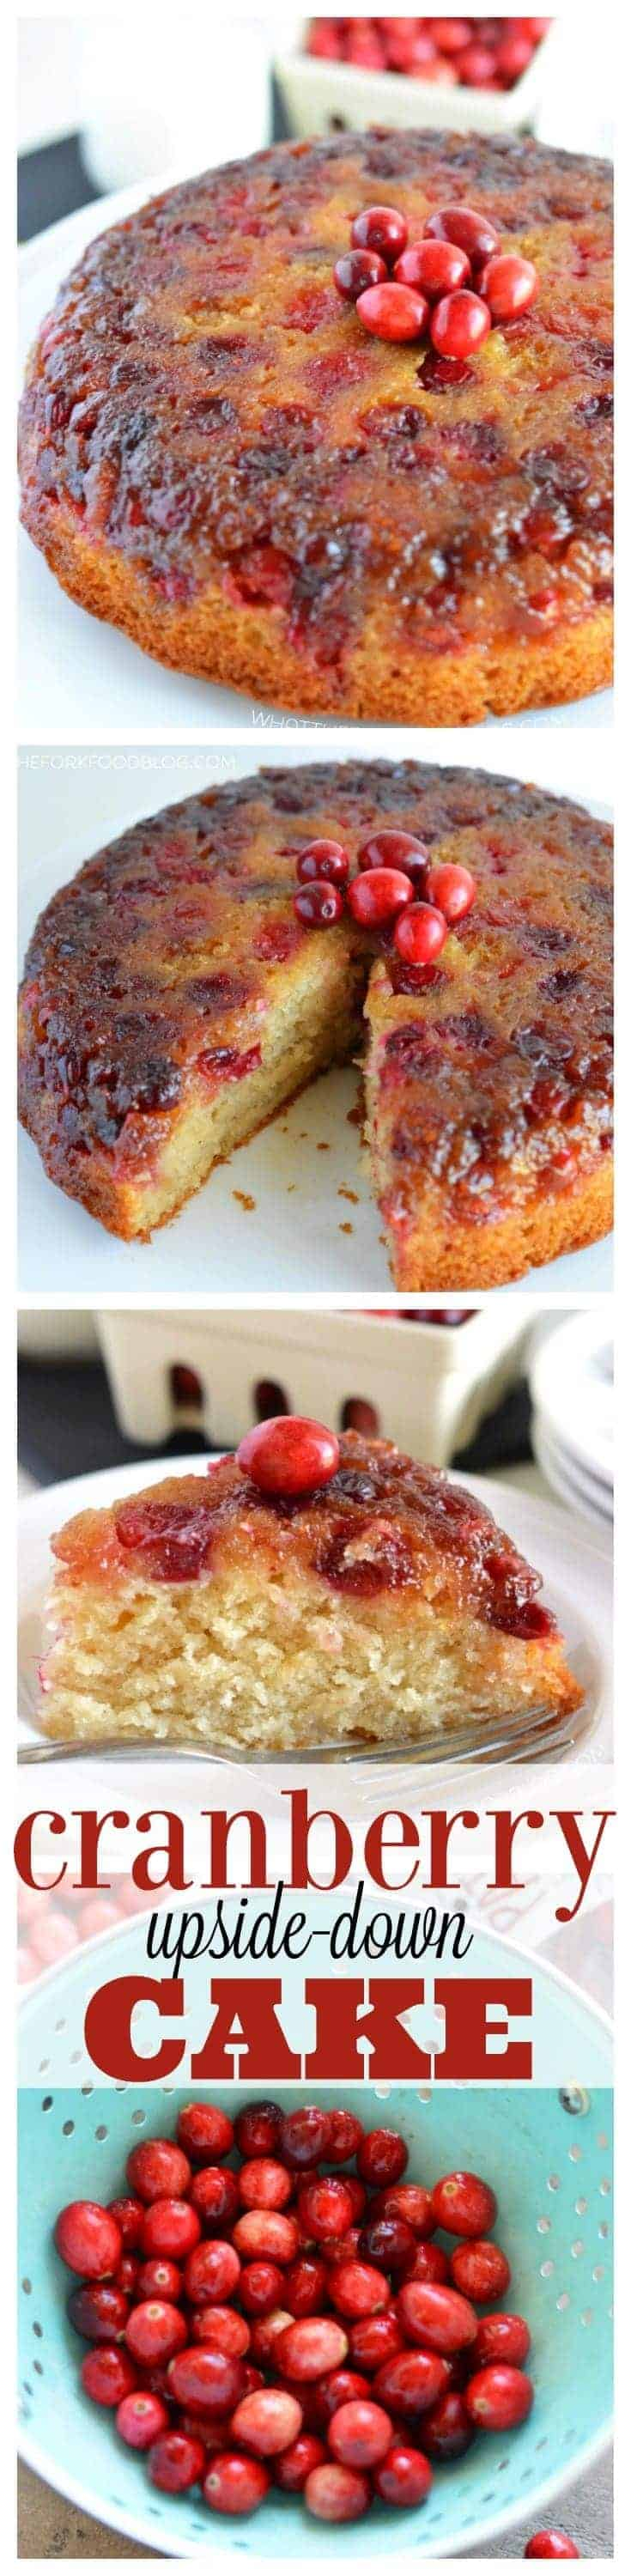 Cranberry Upside-Down Cake (gluten free and dairy free) from What The Fork Food Blog | whattheforkfoodblog.com